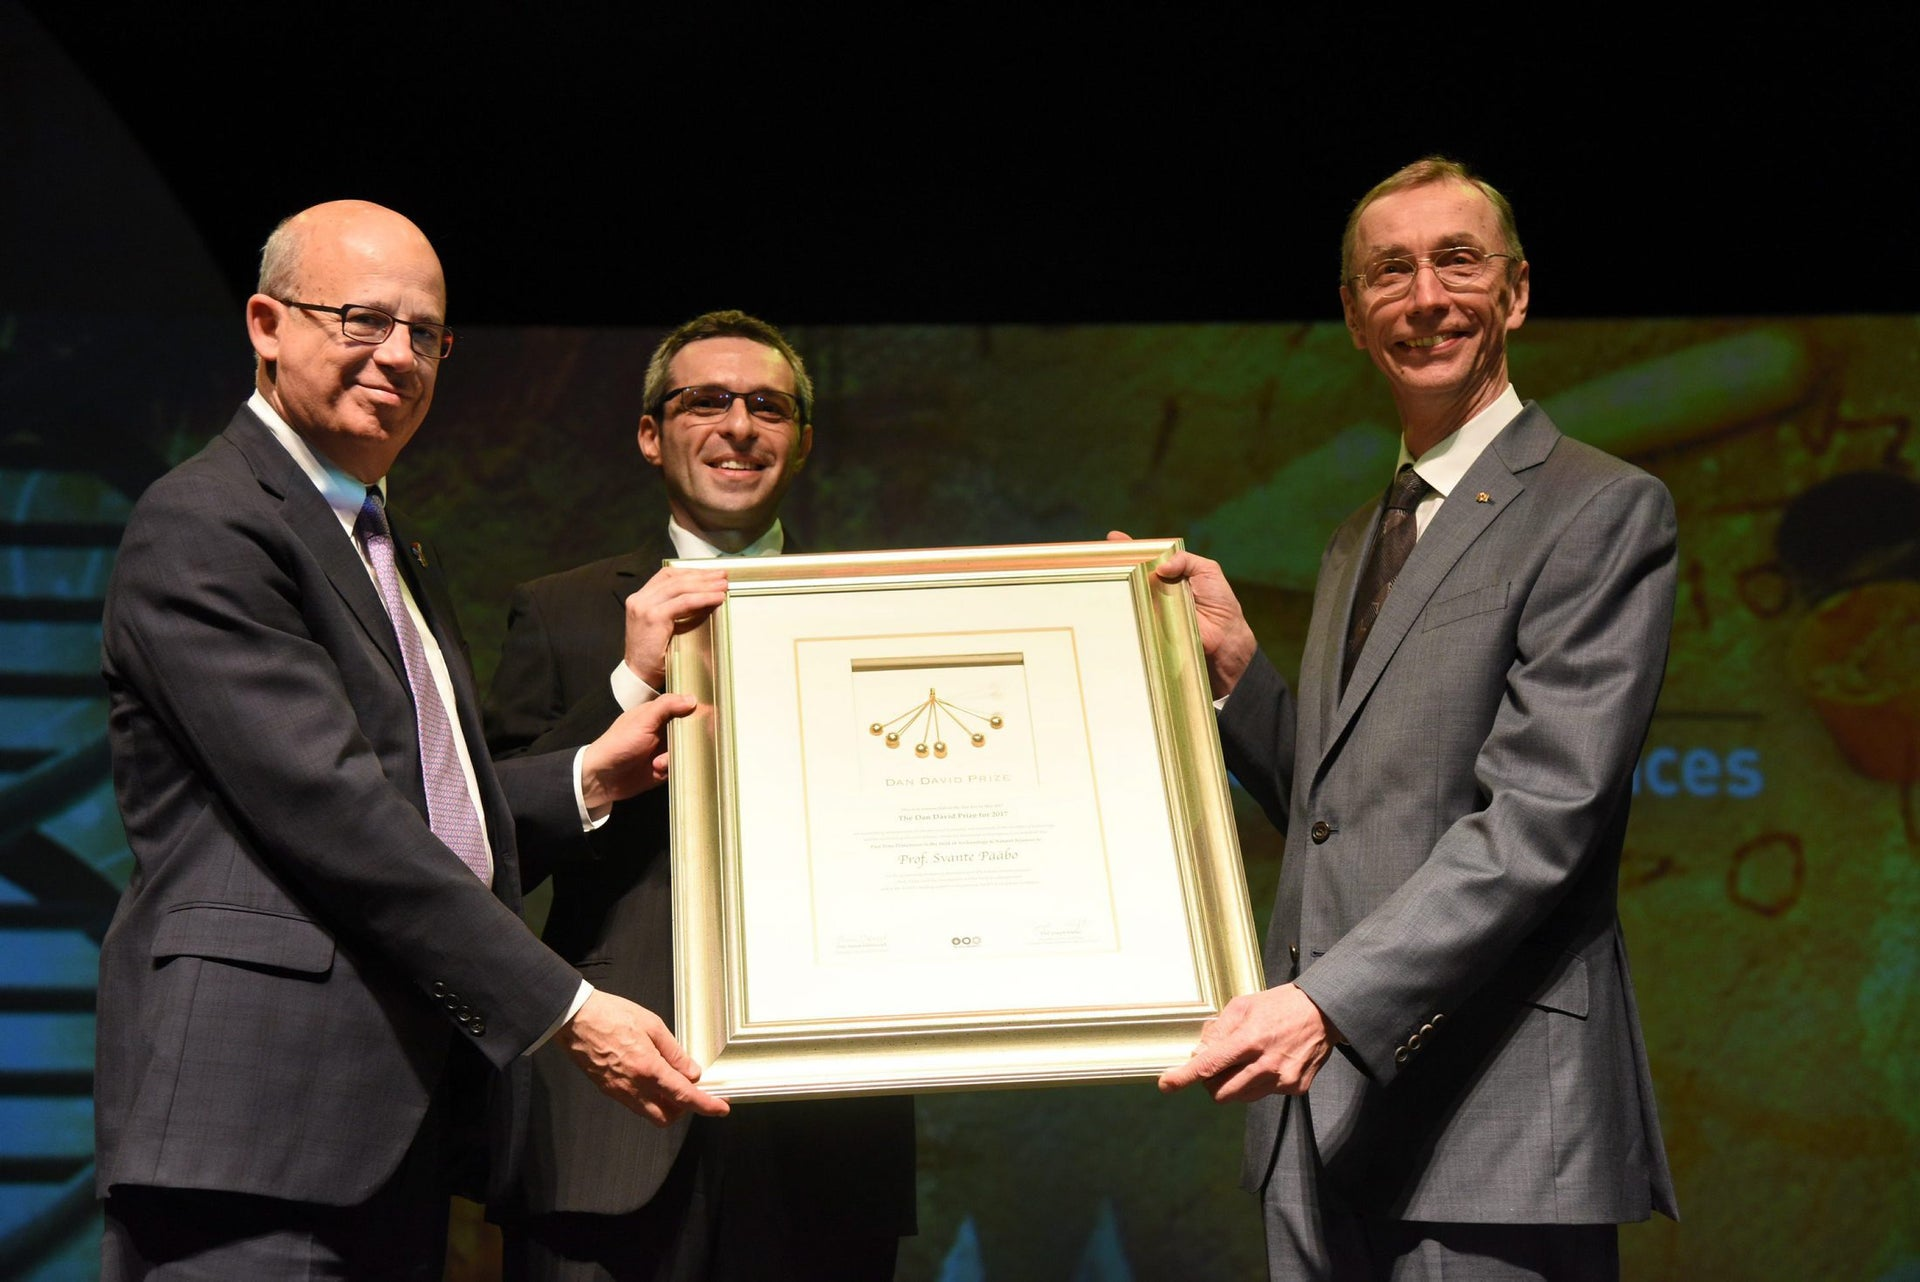 Prof. Svante Paabo, right, receiving the Dan David prize from Prof. Joseph Klafter, left, and Ariel David.